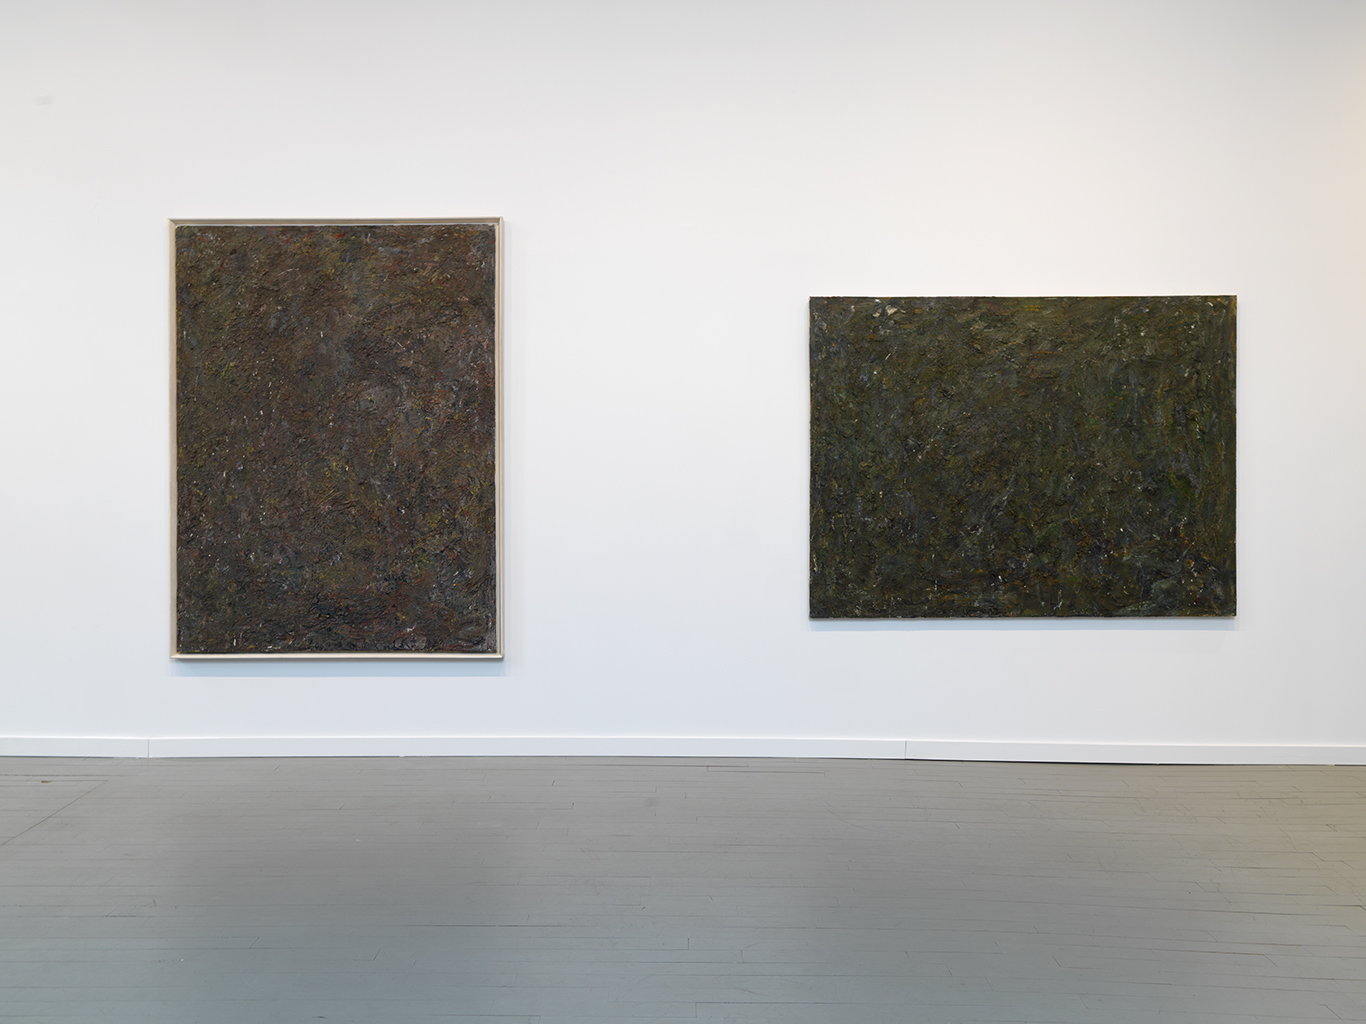 Left: Straws, 1981 Oil on canvas 80 x 60 inches  Right: Burned O, 1983 Oil on canvas 60 x 80 inches